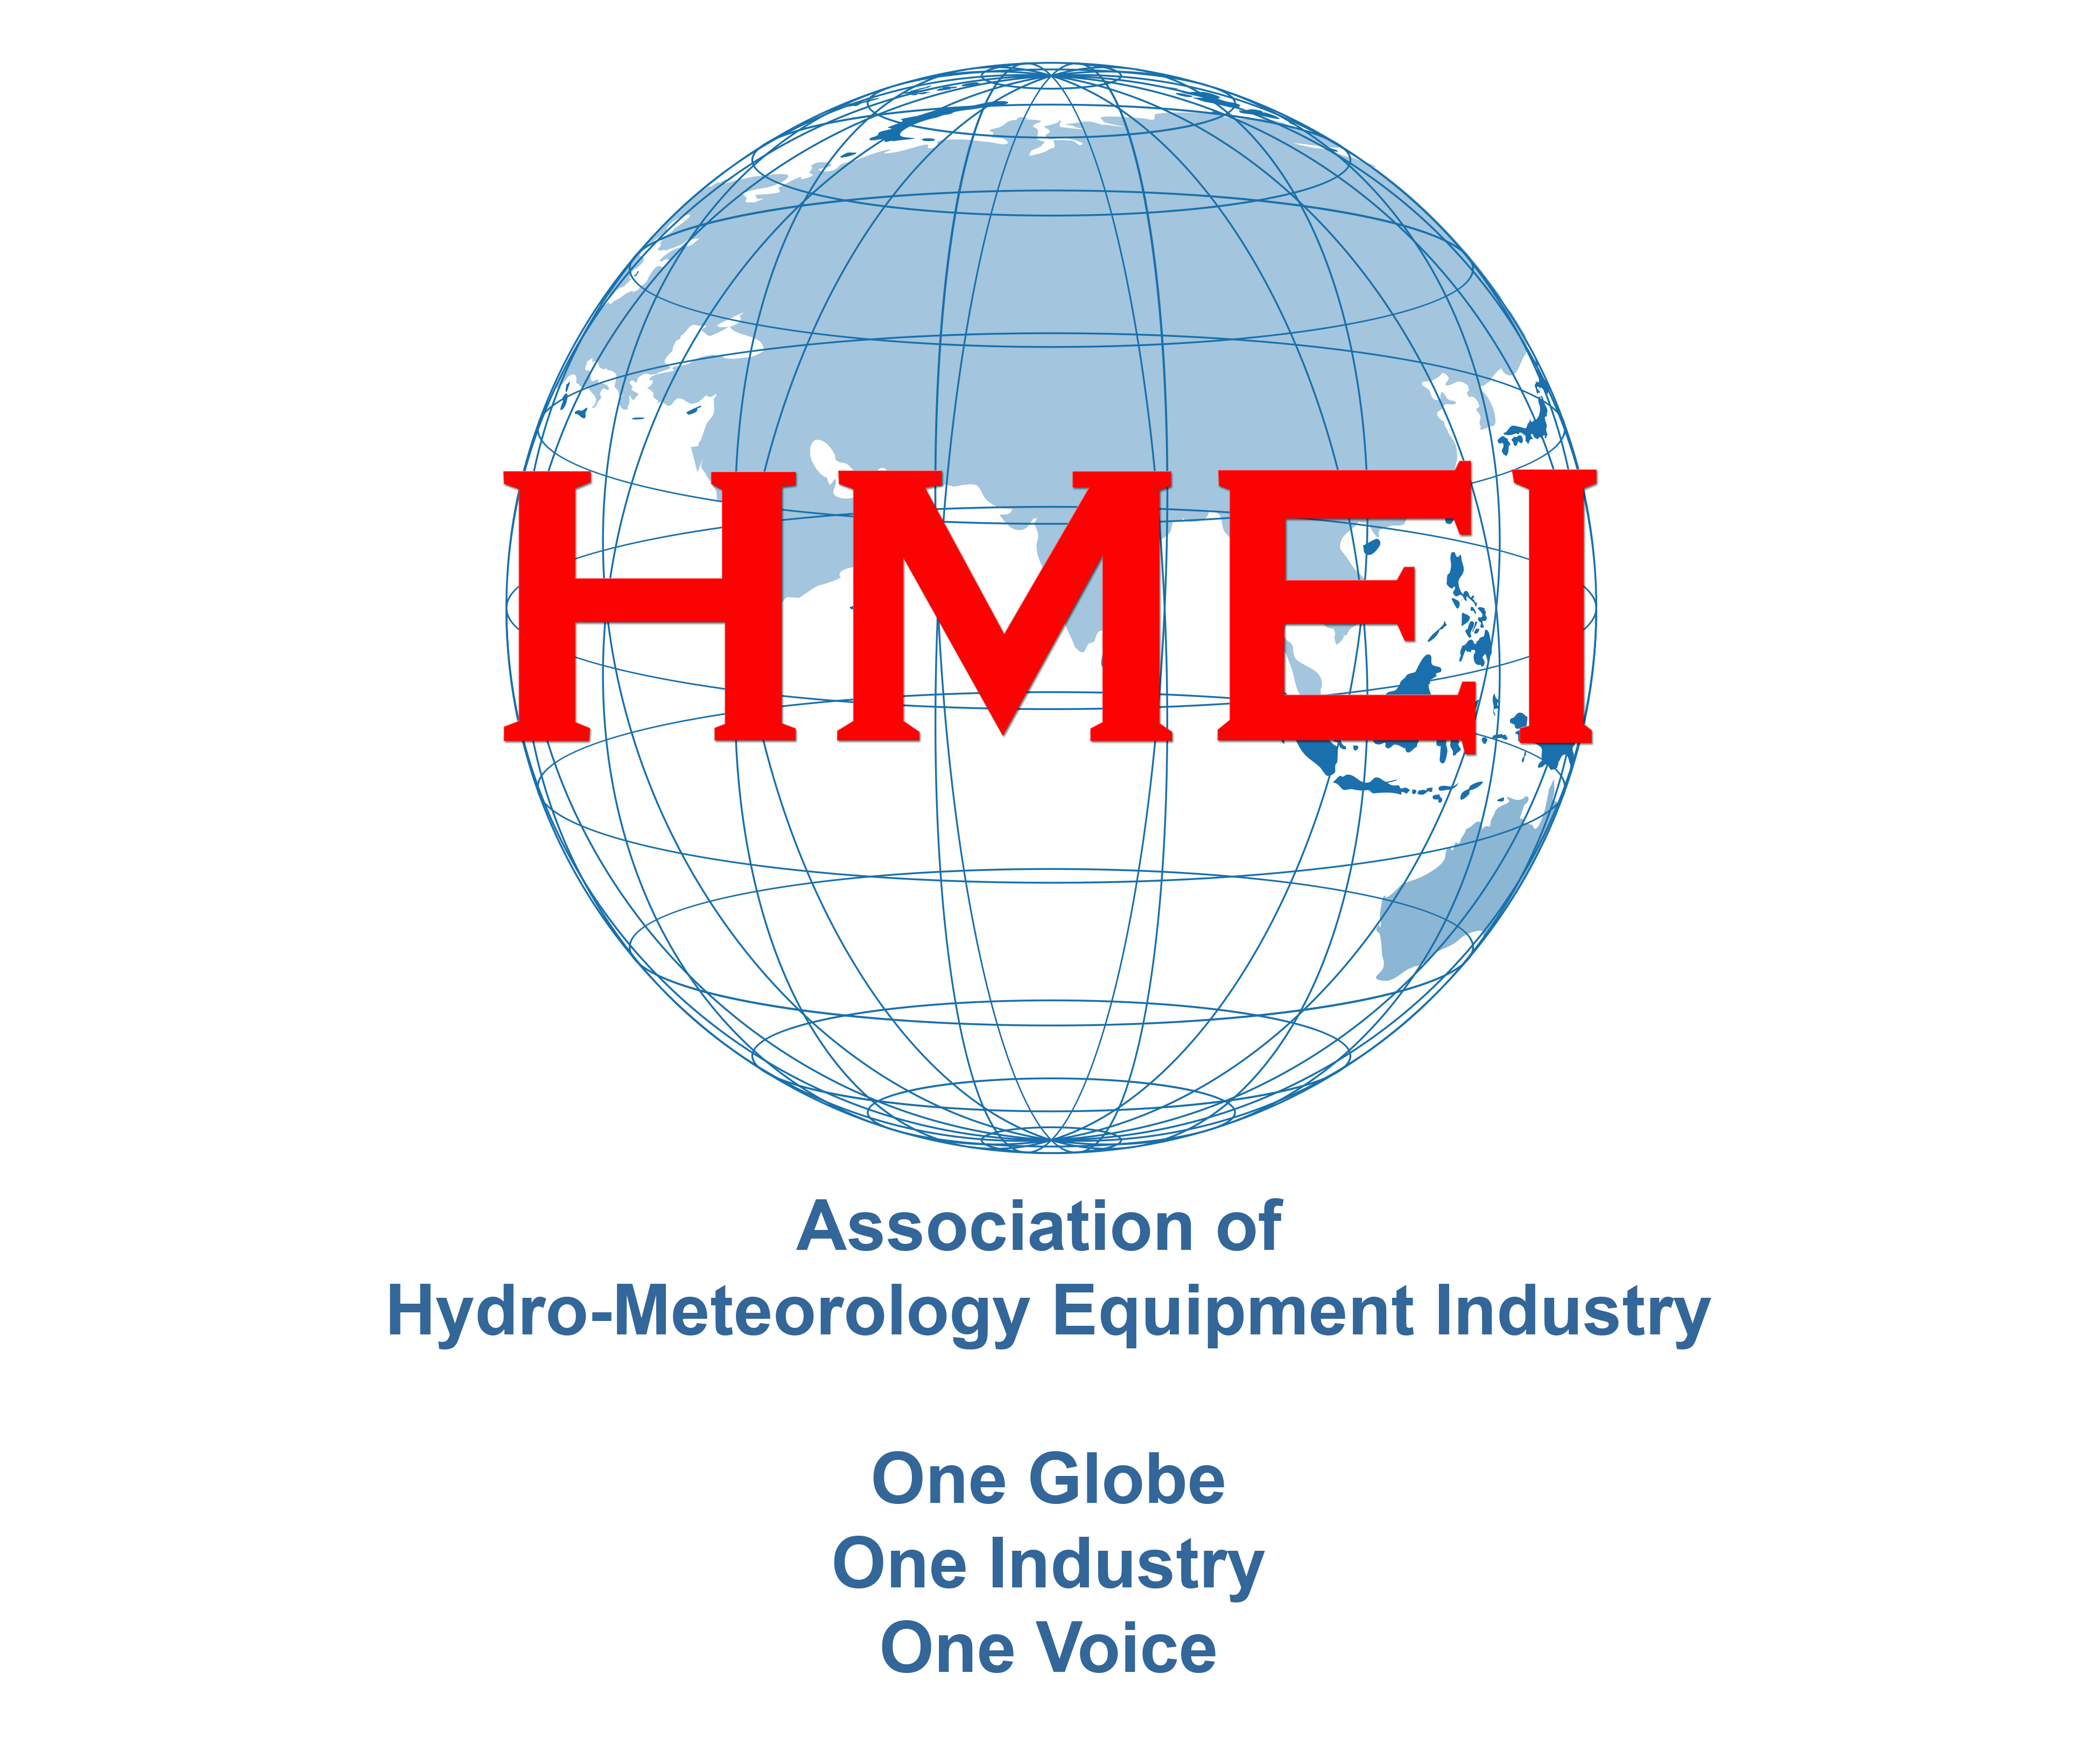 logo for Association of Hydro-Meteorological Equipment Industry